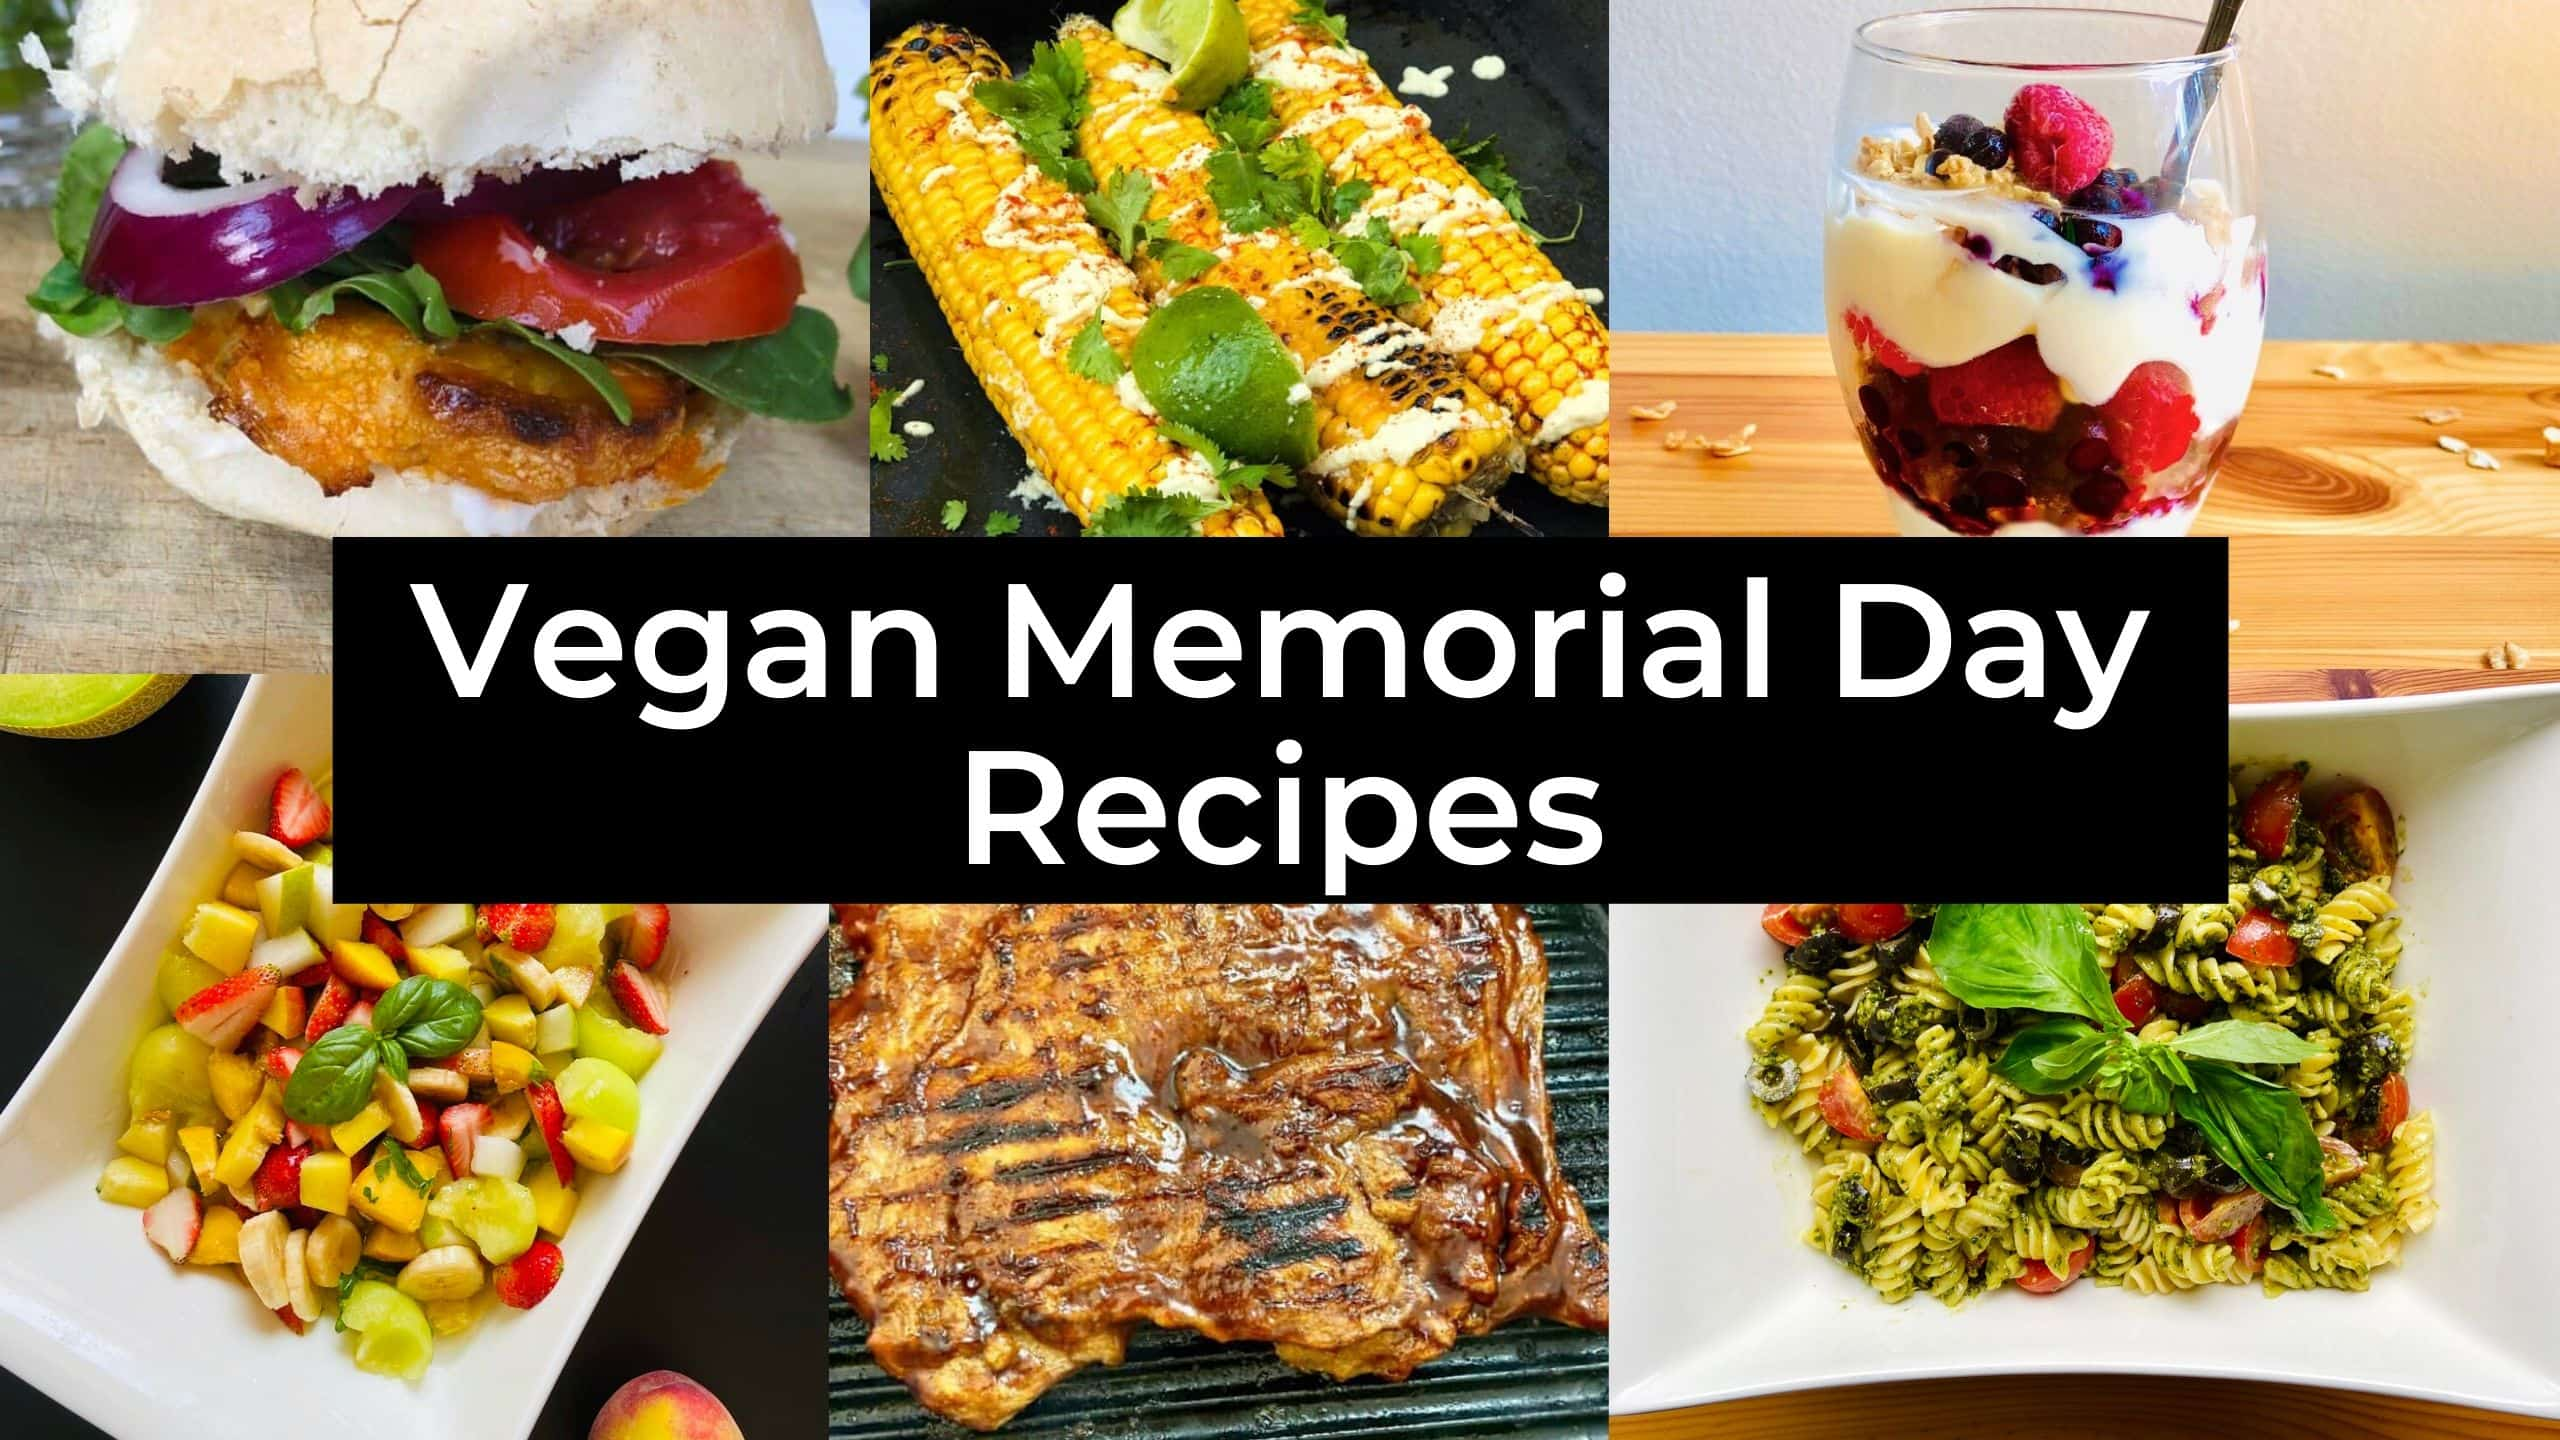 30 Vegan Memorial Day Recipes